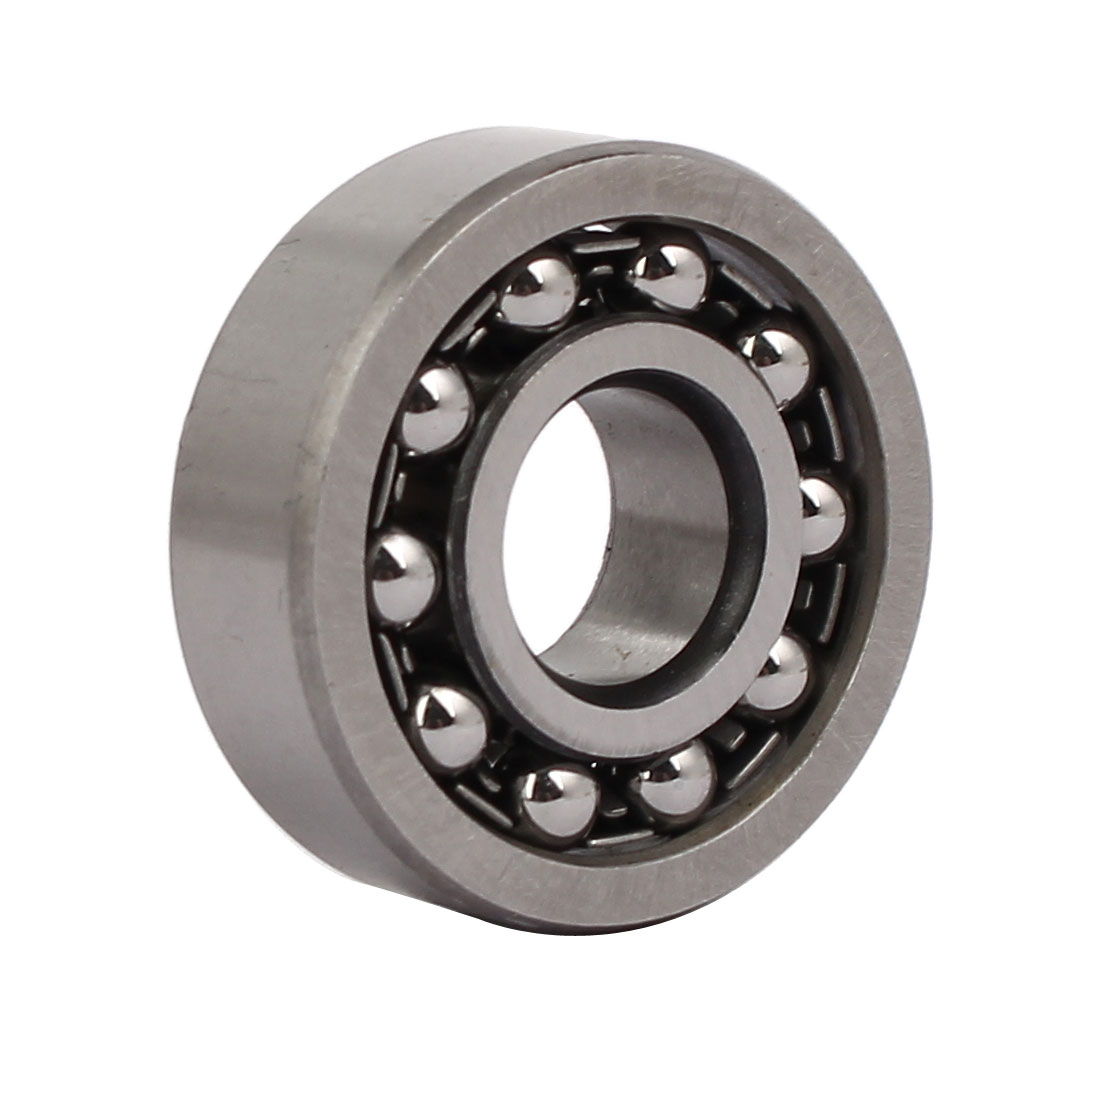 32mmx12mmx10mm 1201 Double Row Self-Aligning Ball Bearing Silver Tone